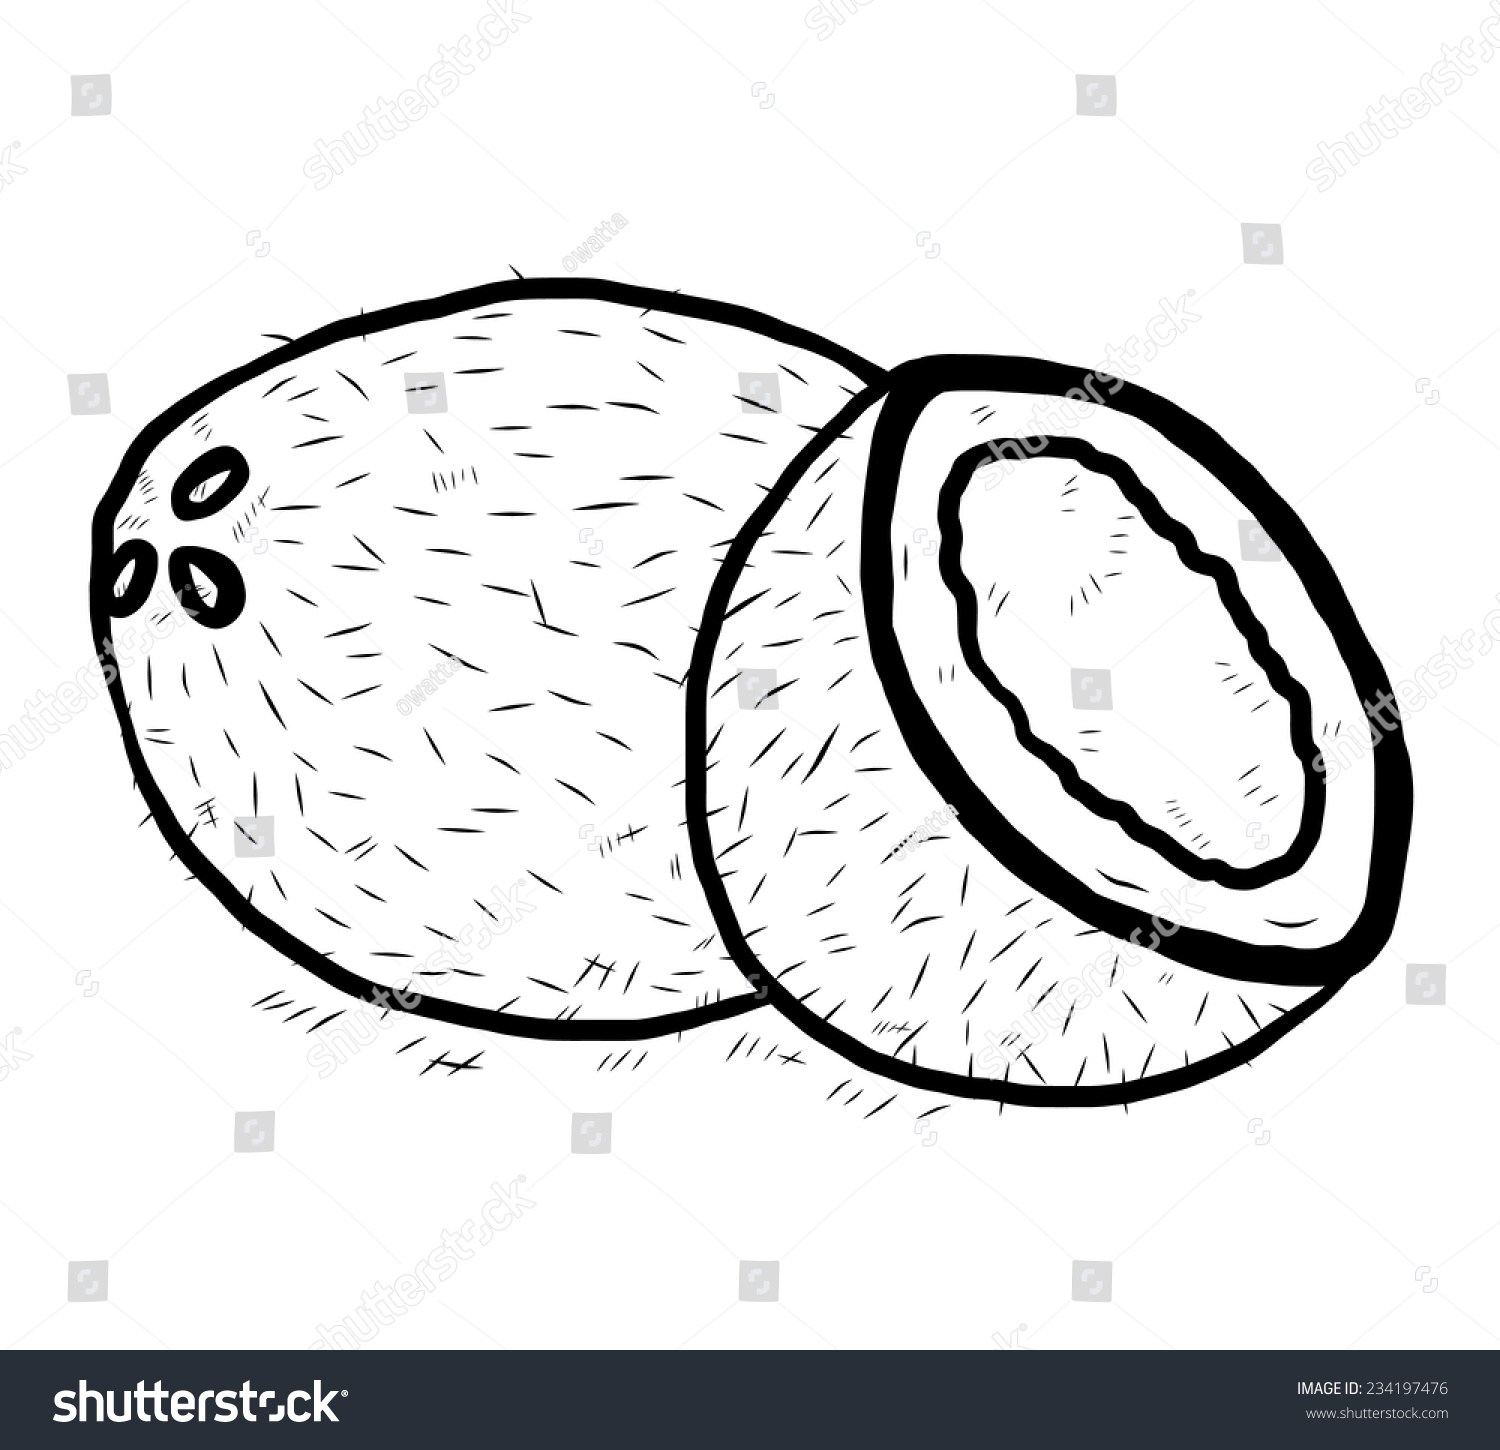 Clipart black and white coconut 3 » Clipart Portal.